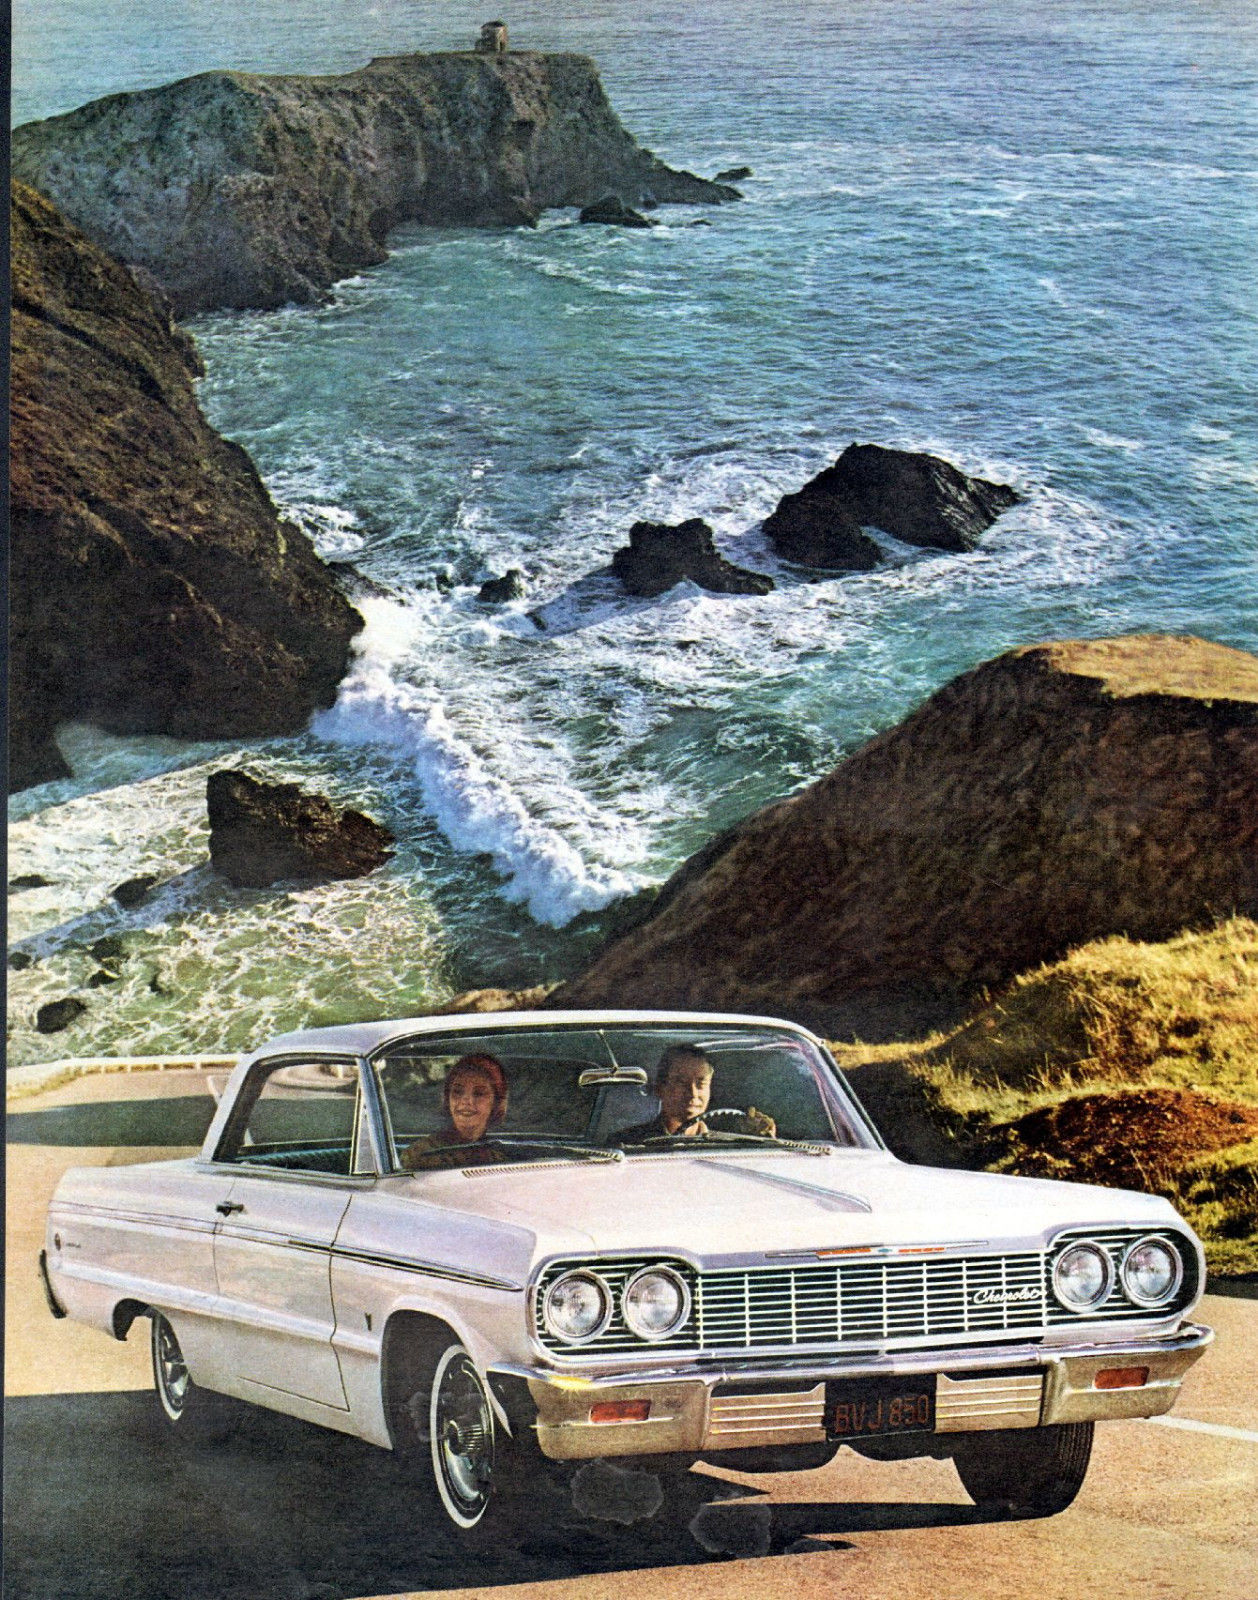 transpress nz 1964 Chevrolet Impala ads